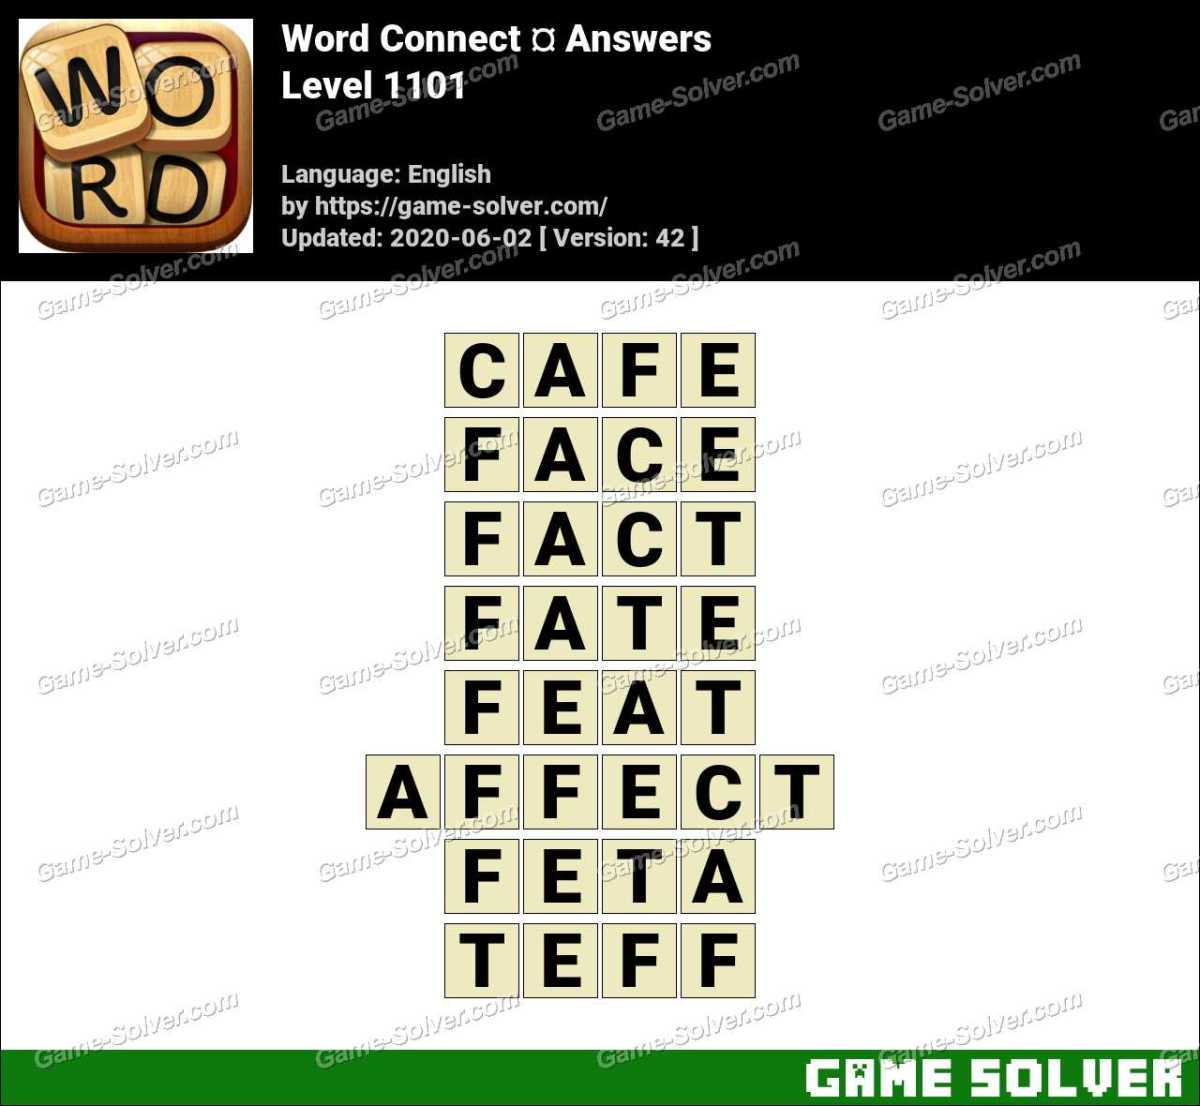 Word Connect Level 1101 Answers